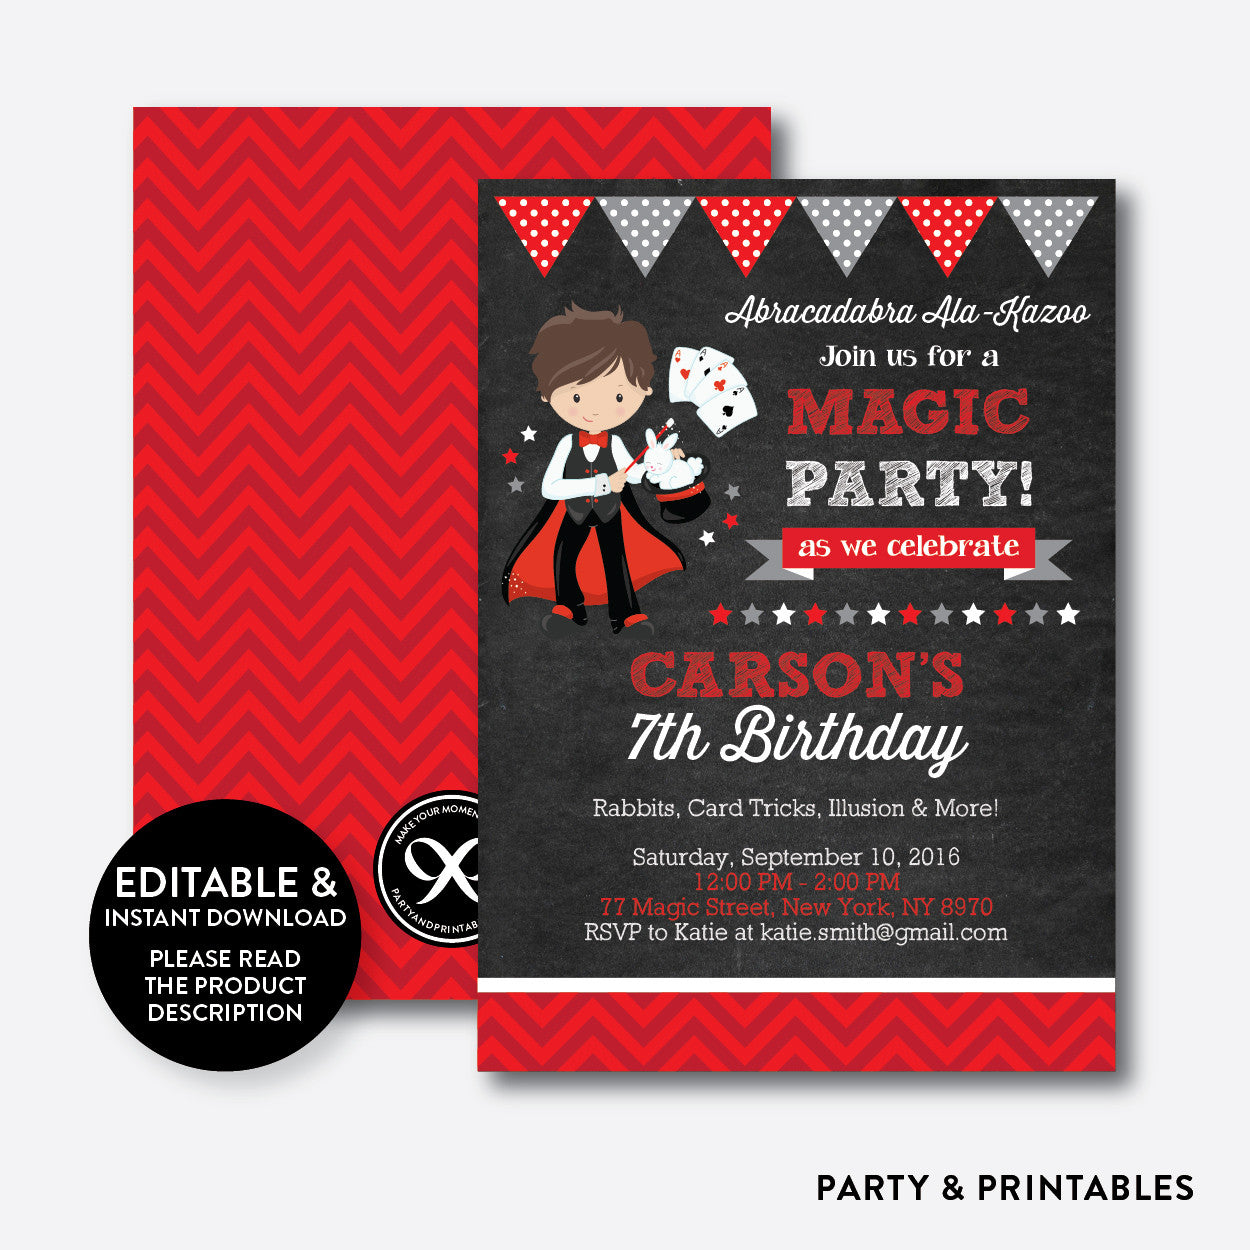 Magician Chalkboard Kids Birthday Invitation Editable Instant Down Party And Printables